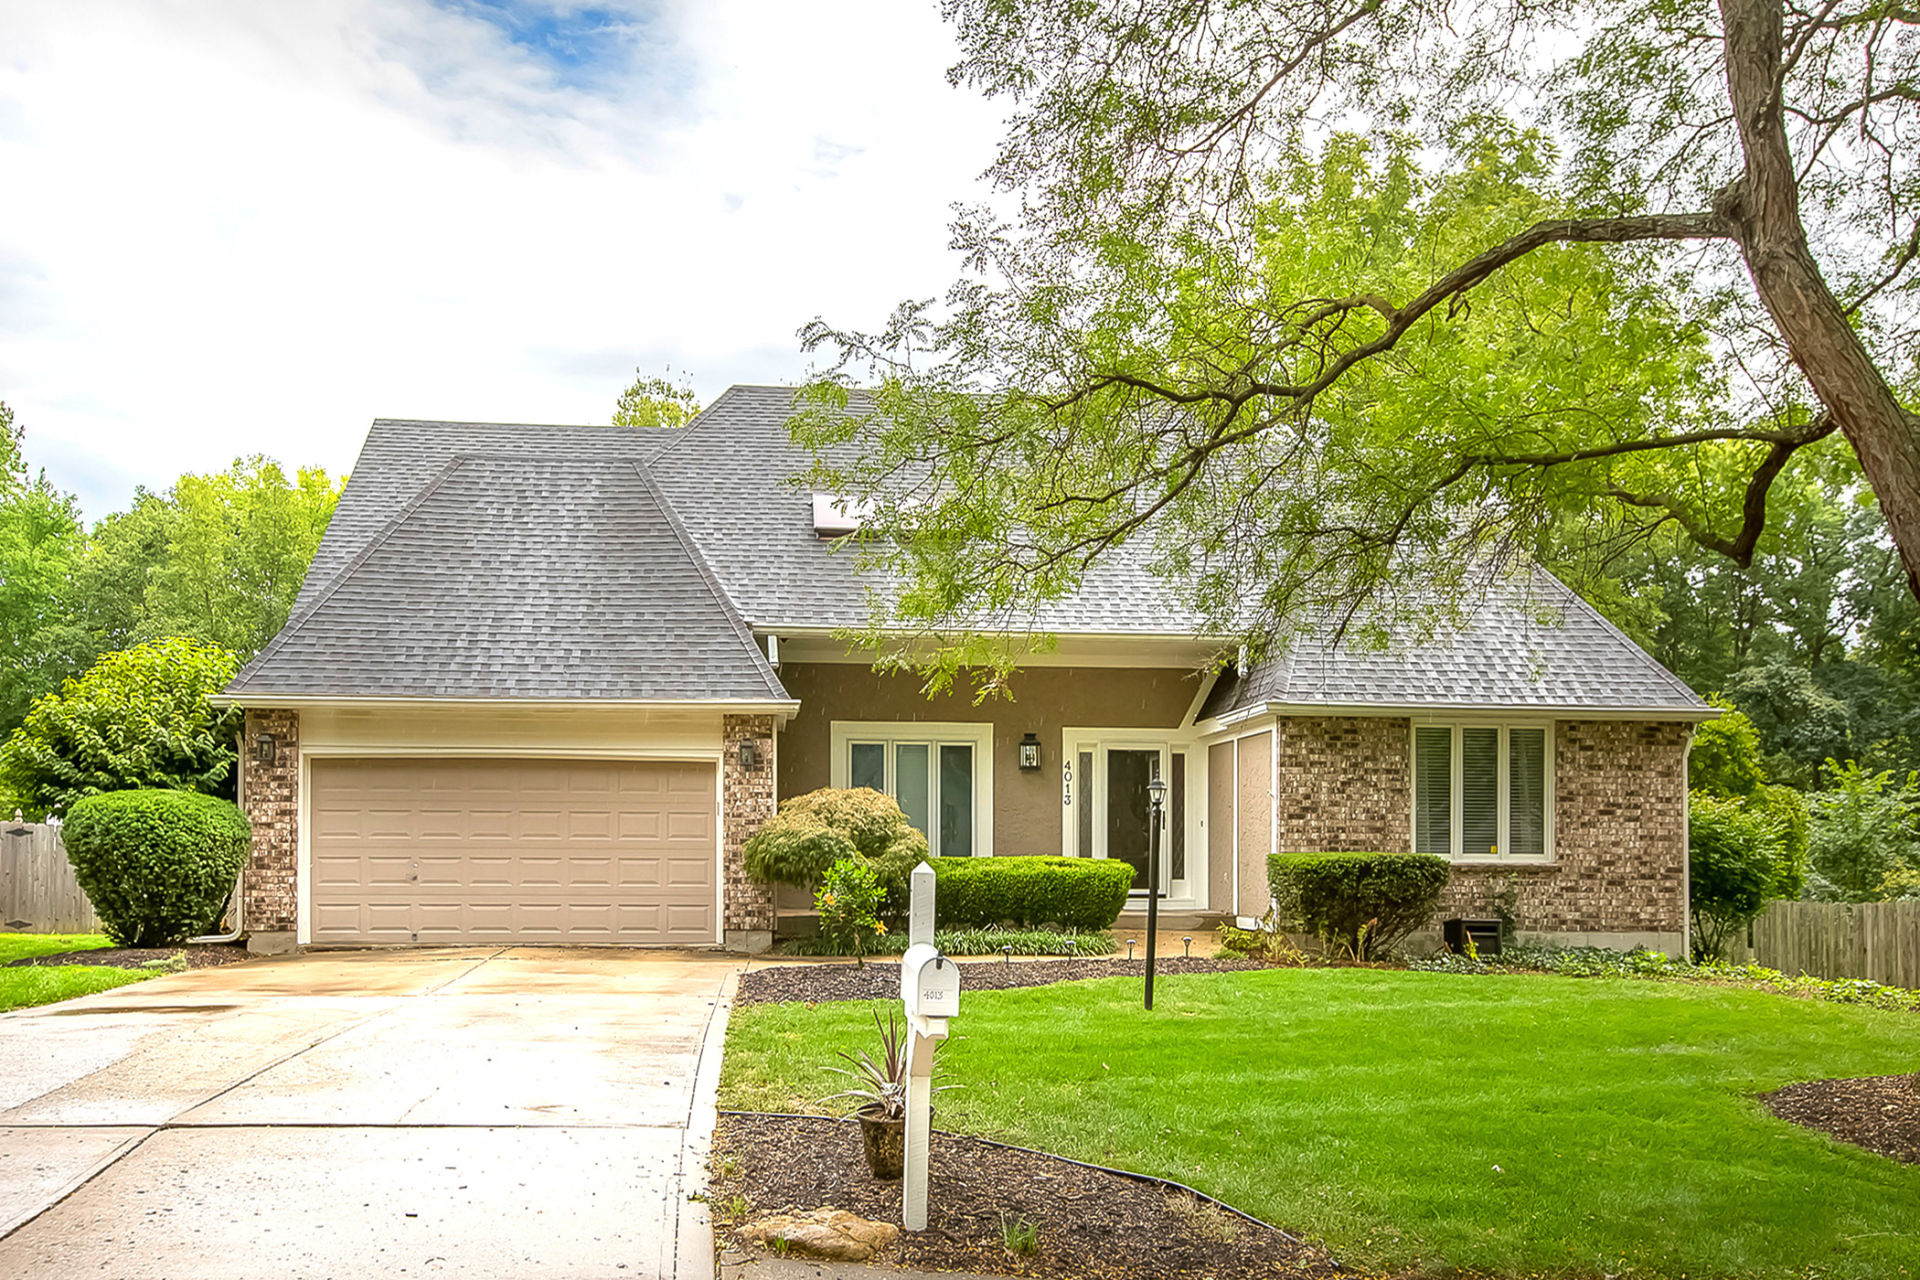 JUST LISTED with 2 OPEN HOUSES this Weekend! Gladstone, MO!